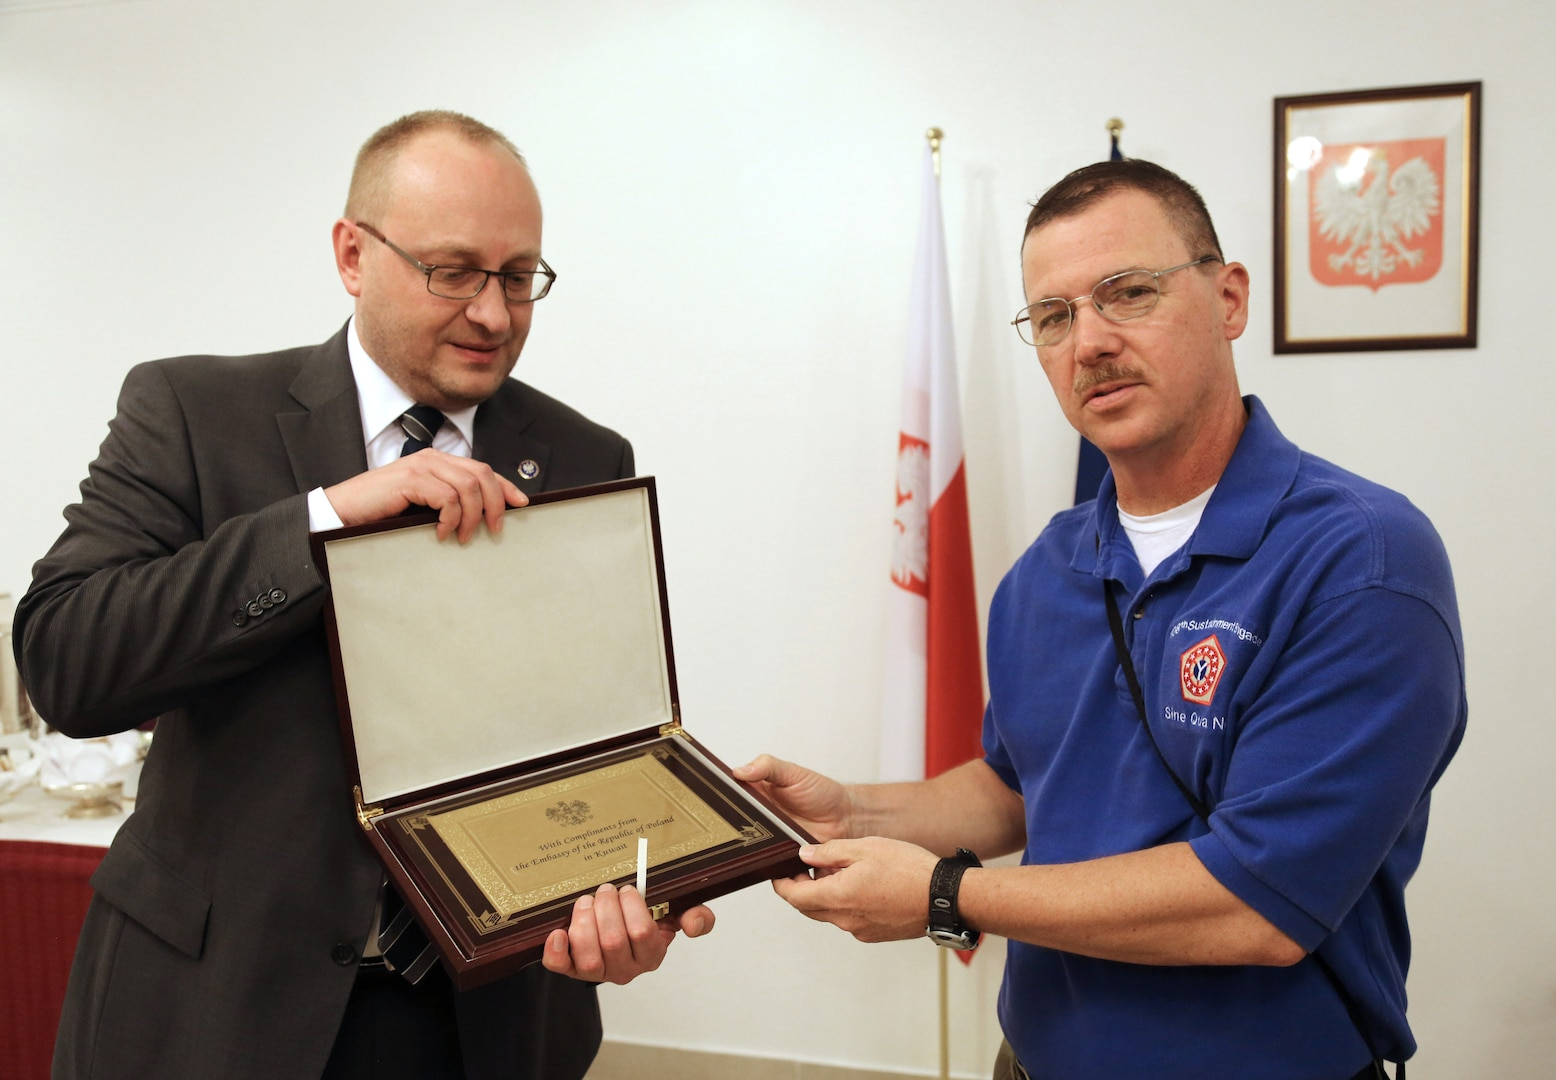 Grzegorz Olszak, Polish ambassador to the State of Kuwait and the Kingdom of Bahrain, left, presents a token of appreciation to Col. Drew Dukett, commander of the 108th Sustainment Brigade July 14, 2014, at the Polish Embassy of Kuwait.